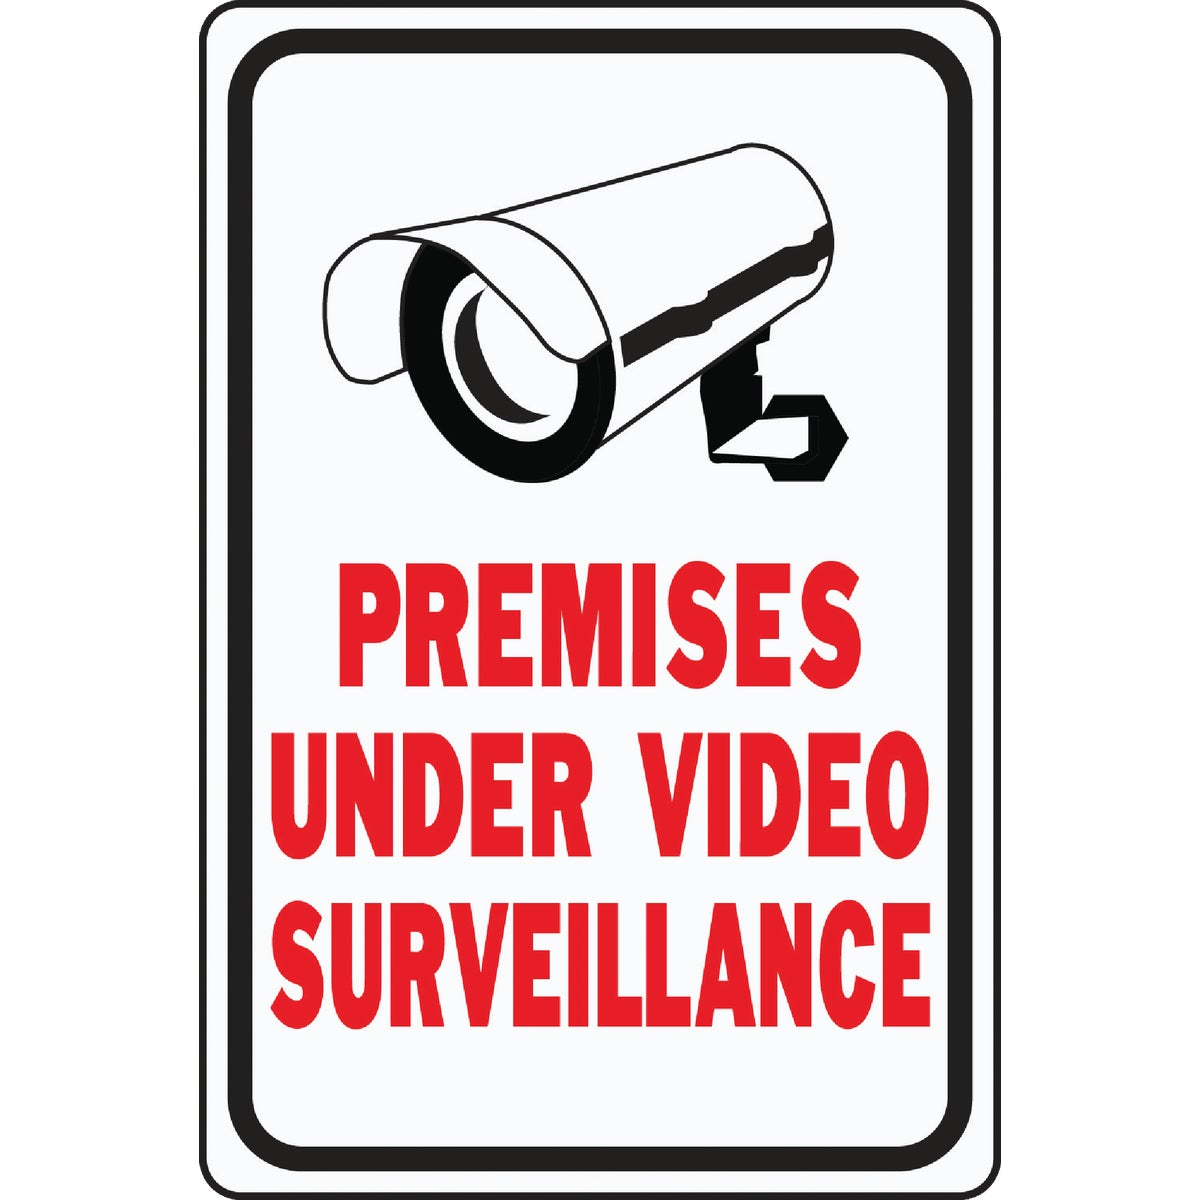 VIDEO SURVEILLANCE SIGN - HW-201 by Hy Ko Prods Co